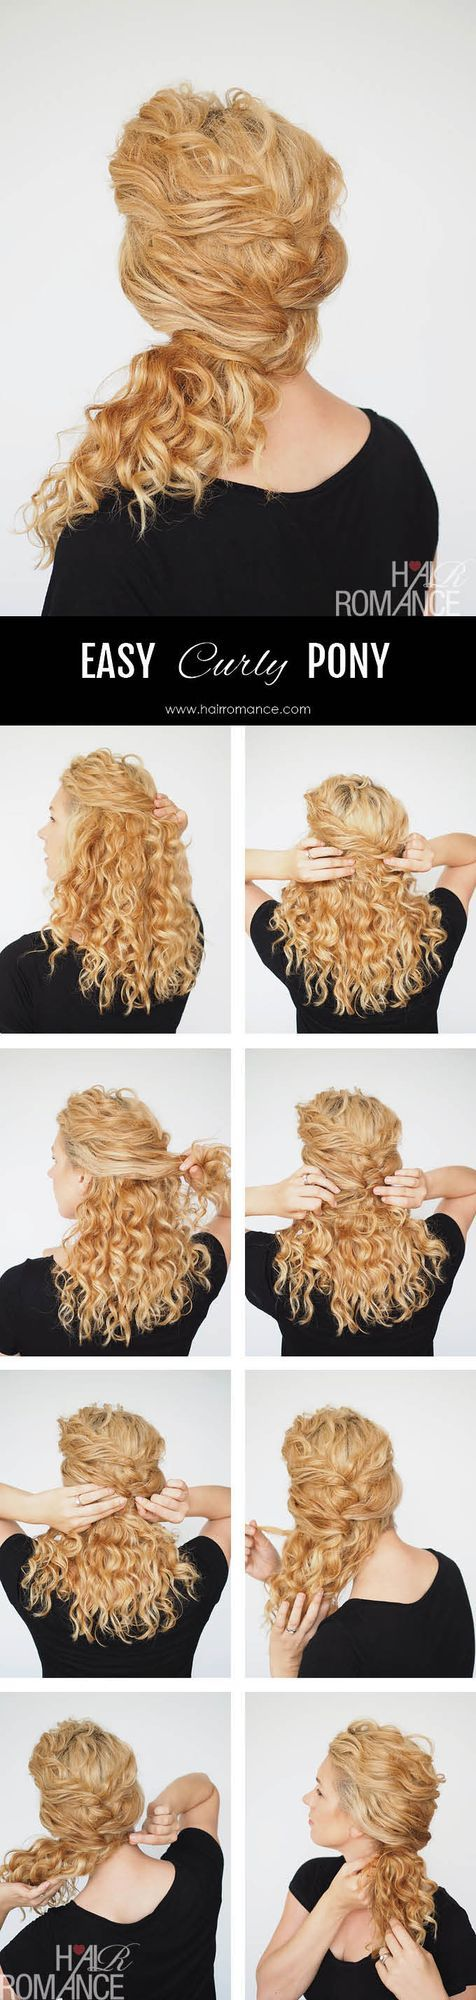 Curly girls, here's another easy curly hair tutorial that you can dress up or down.  This simple side ponytail is easy enough to wear every day. It works well in second day hair and all you need are a